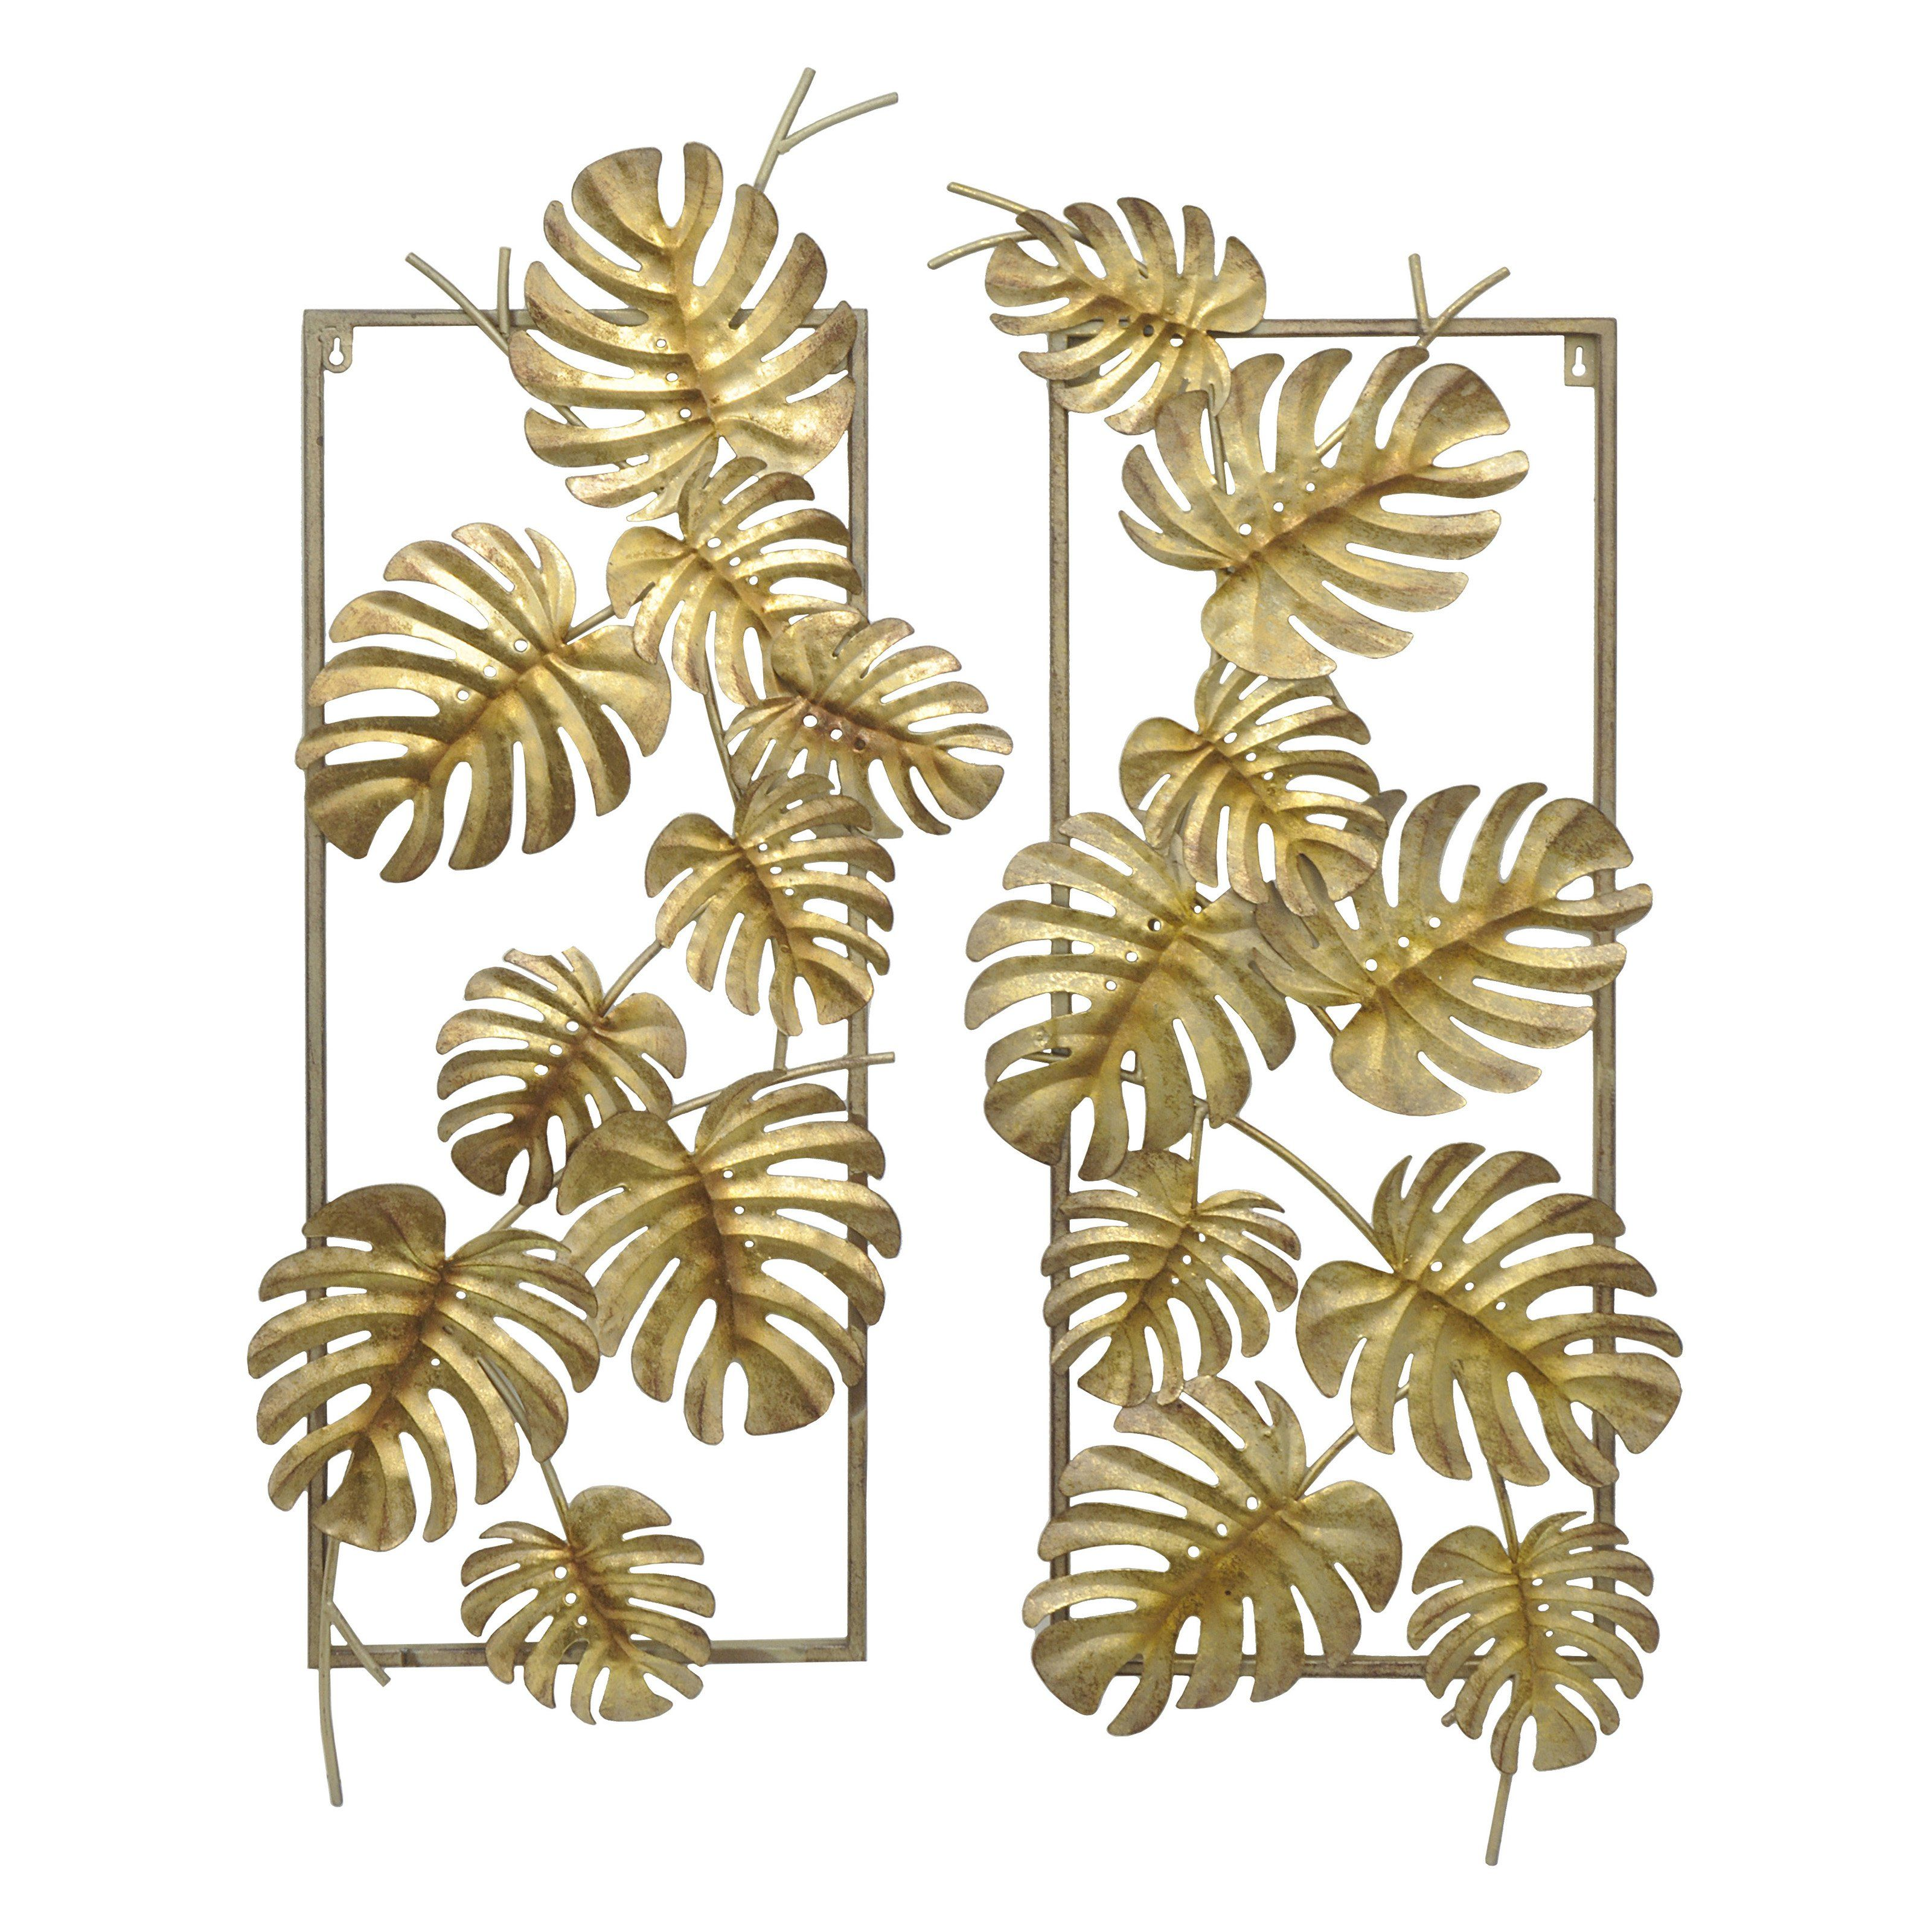 fecc7dc583 Three Hands Gold Leaves Metal Wall Art - Set of 2 - 10118 | Products ...